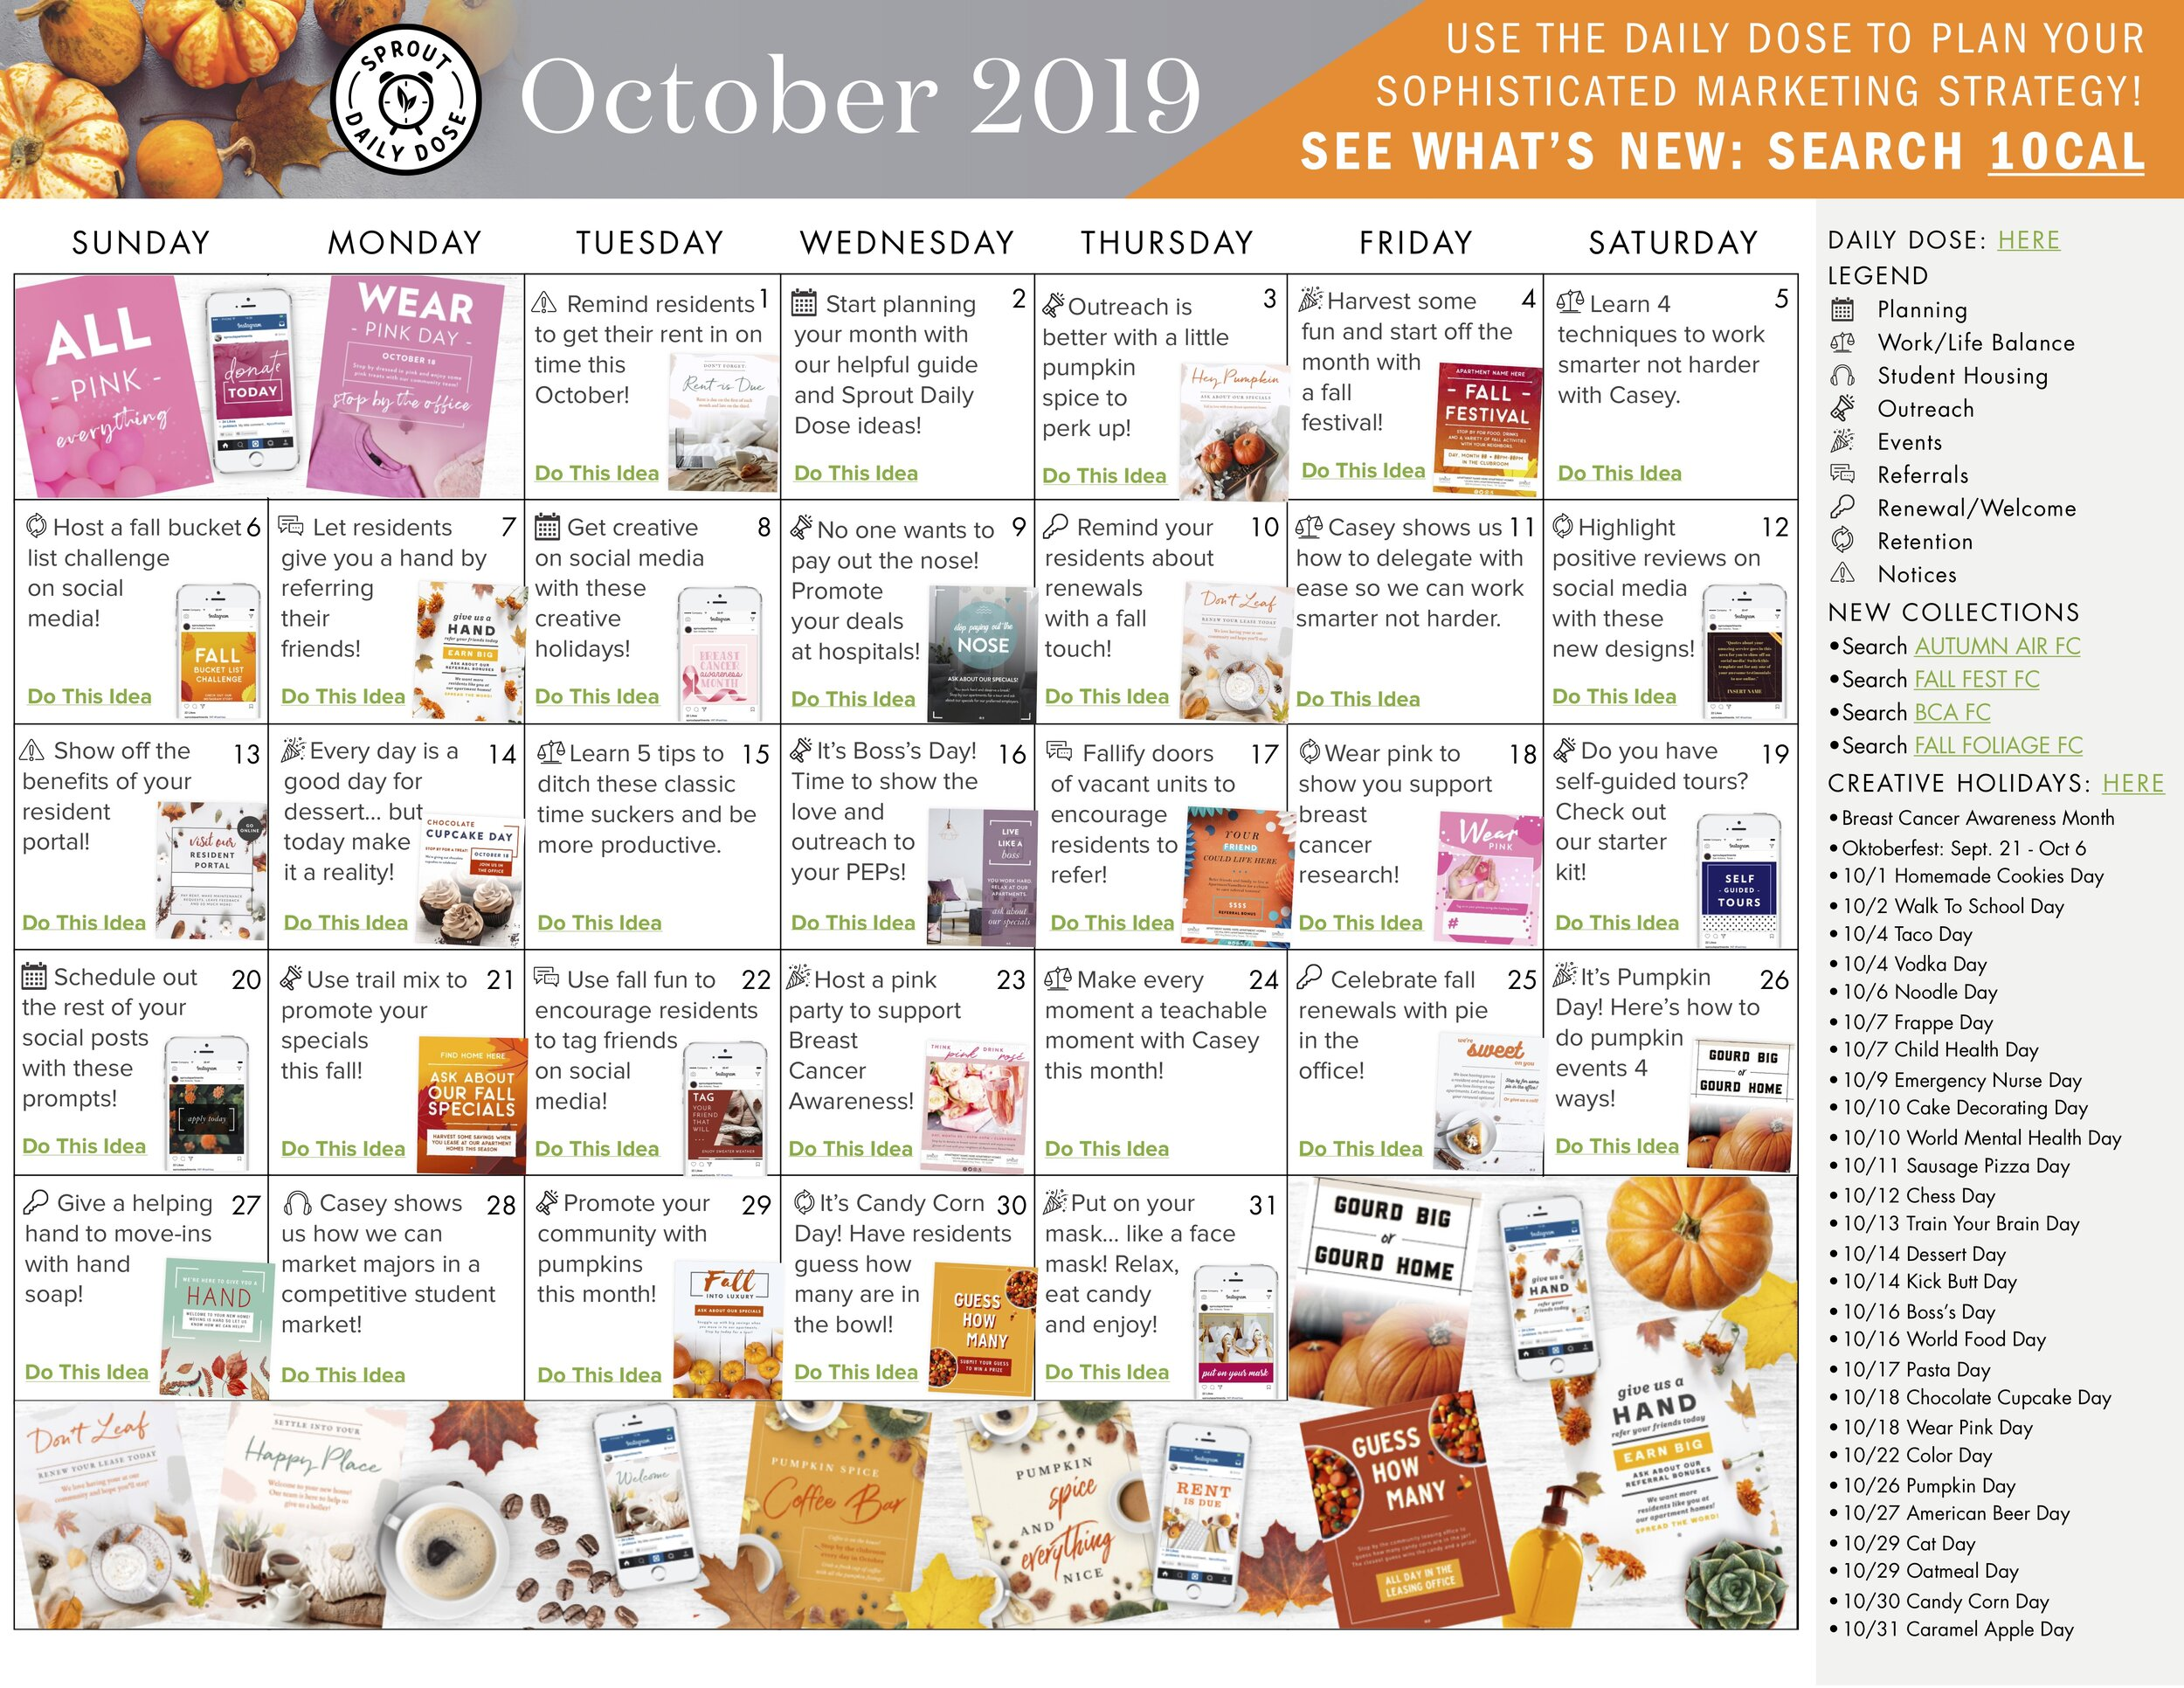 Grab the pre-populated Daily Dose calendar here.